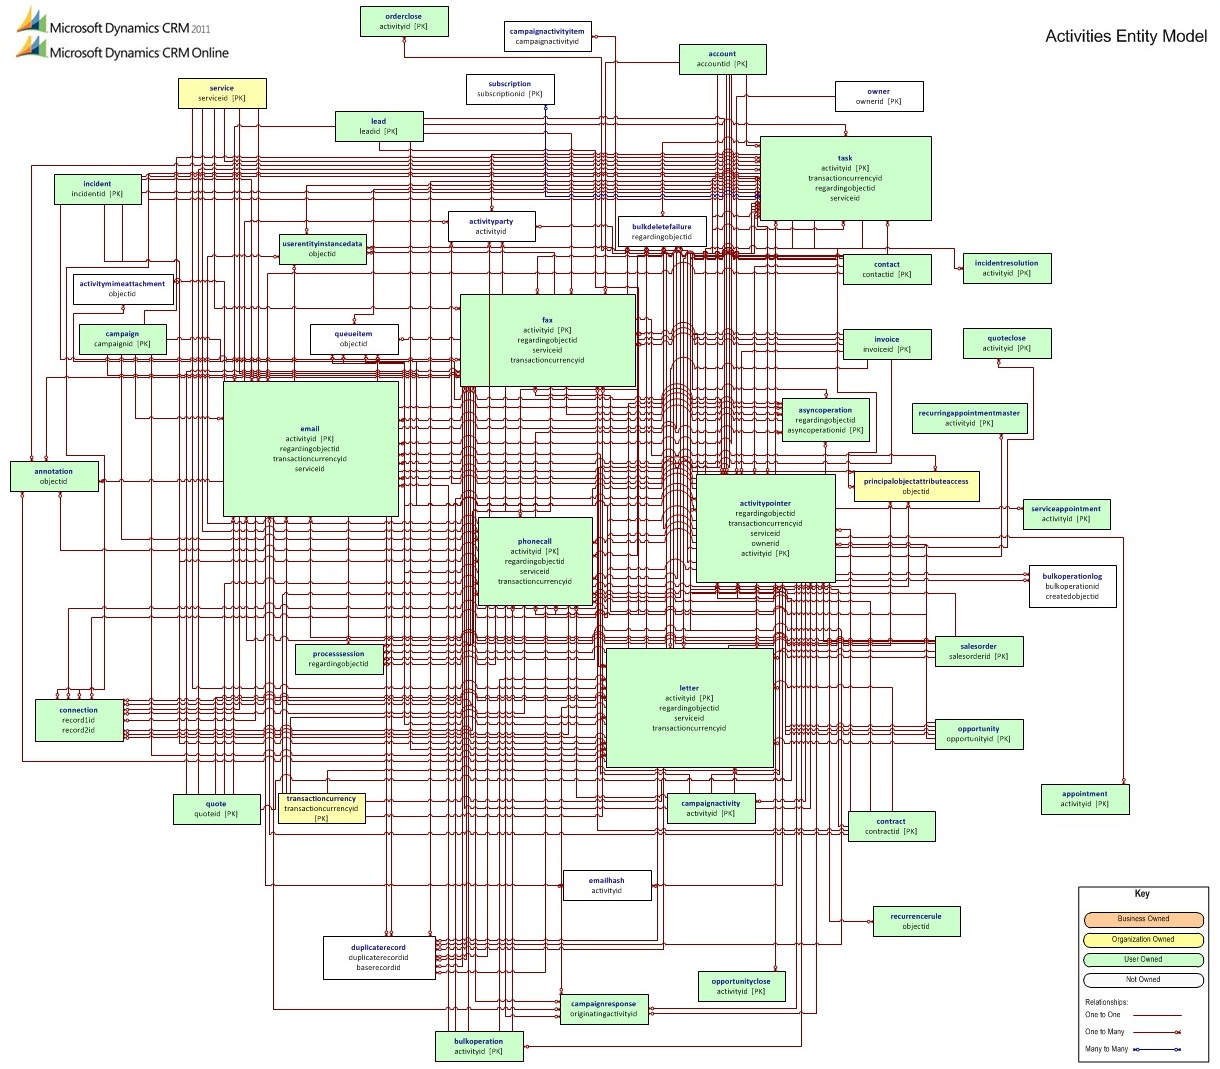 Data Model Entity Relationship Diagram Am Transmitter Block Activity Microsoft Dynamics Crm 2011 And